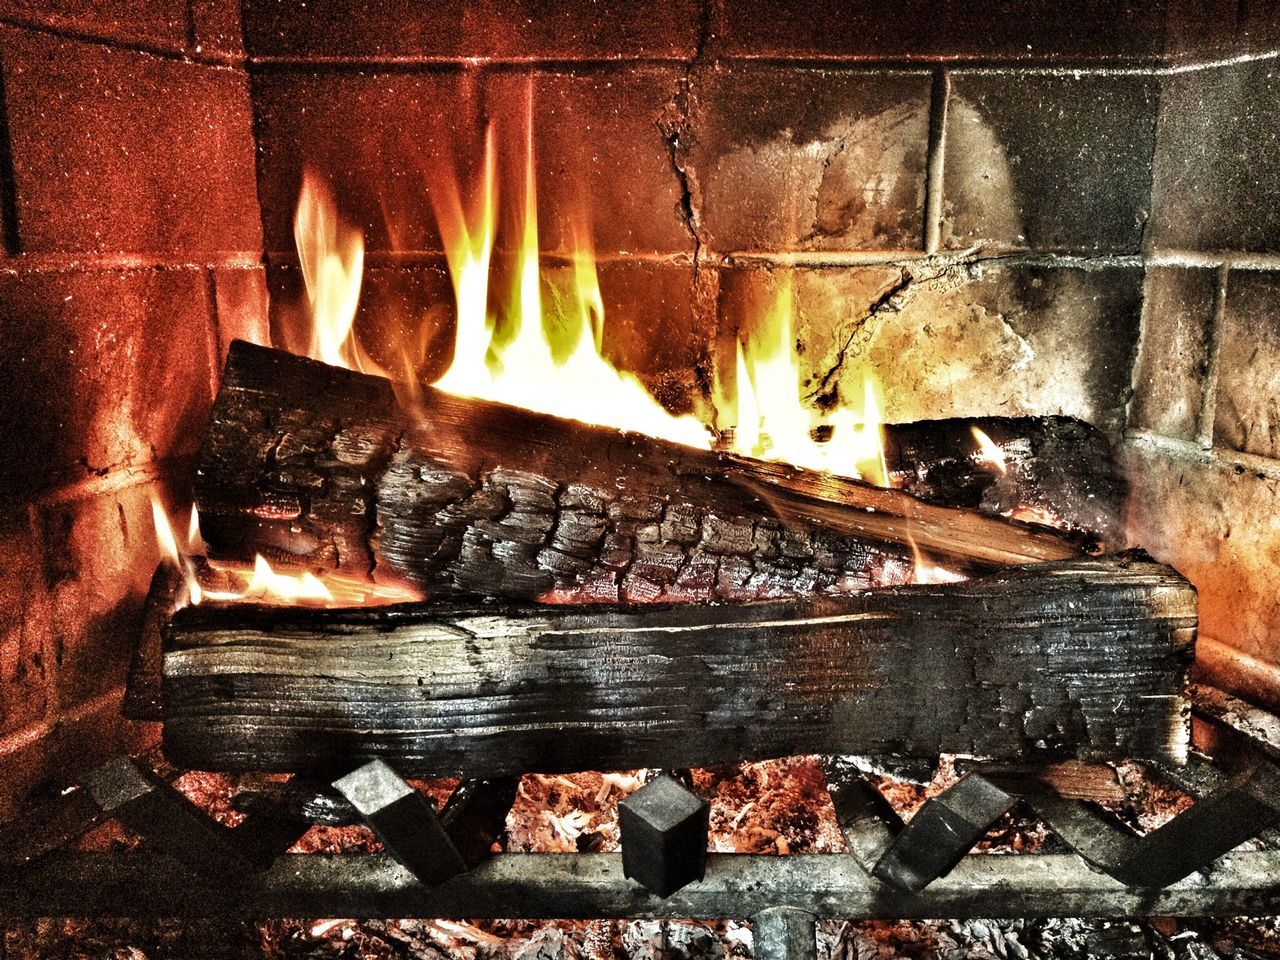 Enjoying Life with a Fireplace warms up the Body And Soul